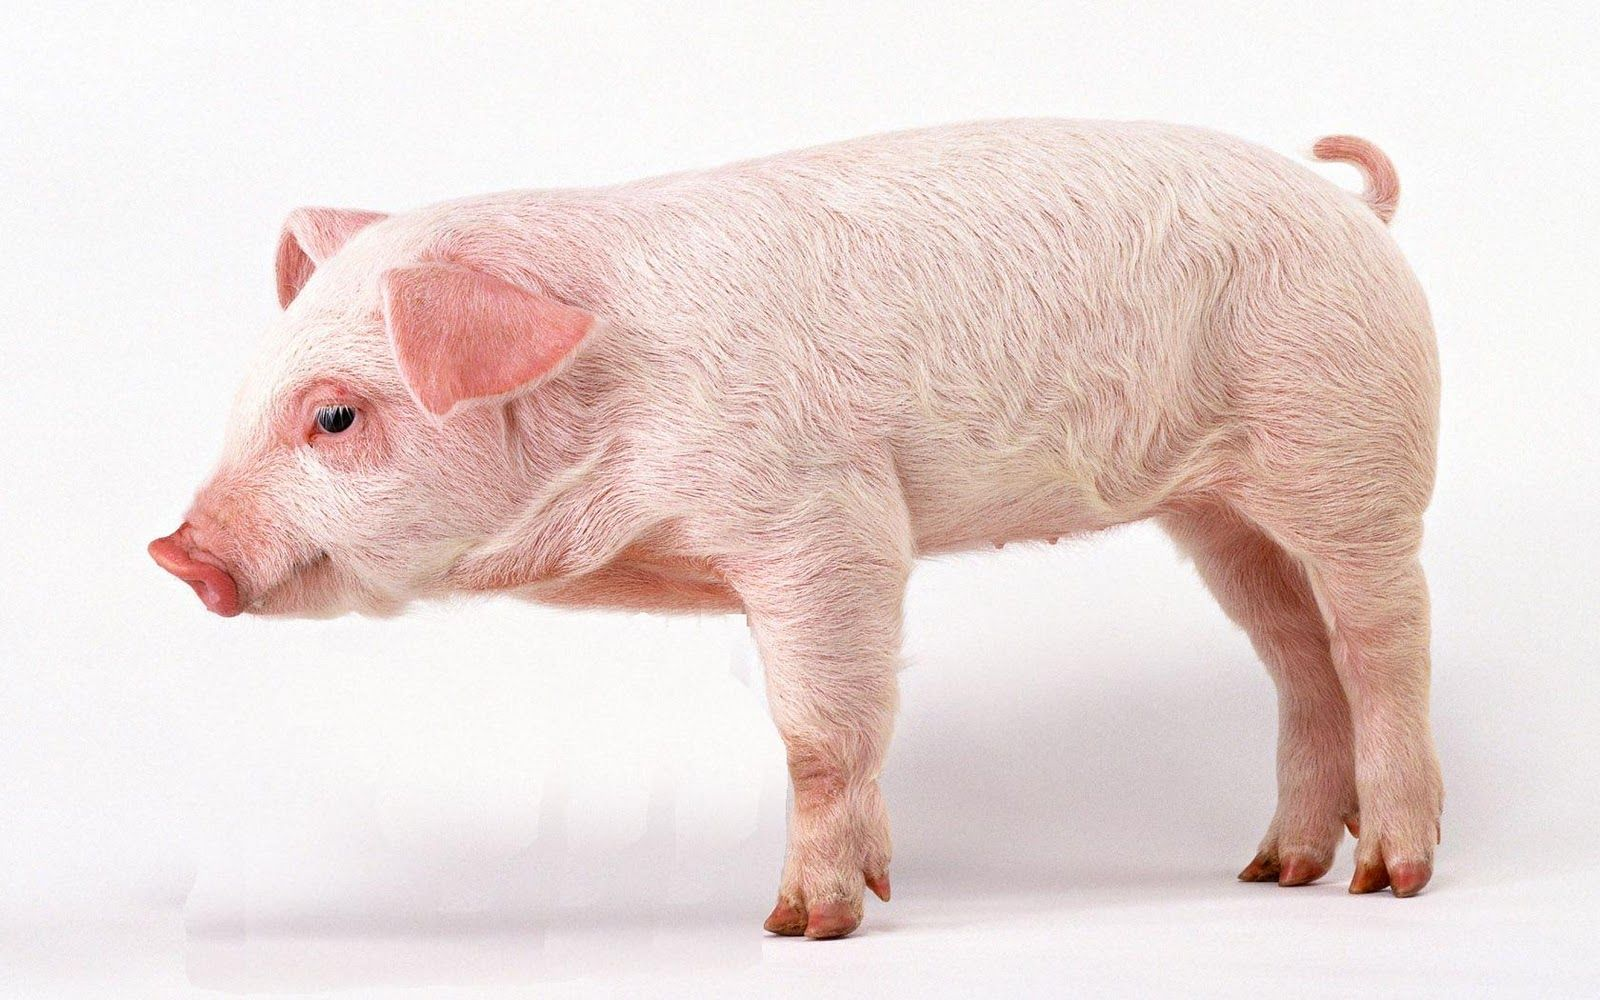 Image Result For Baby Pig Side View